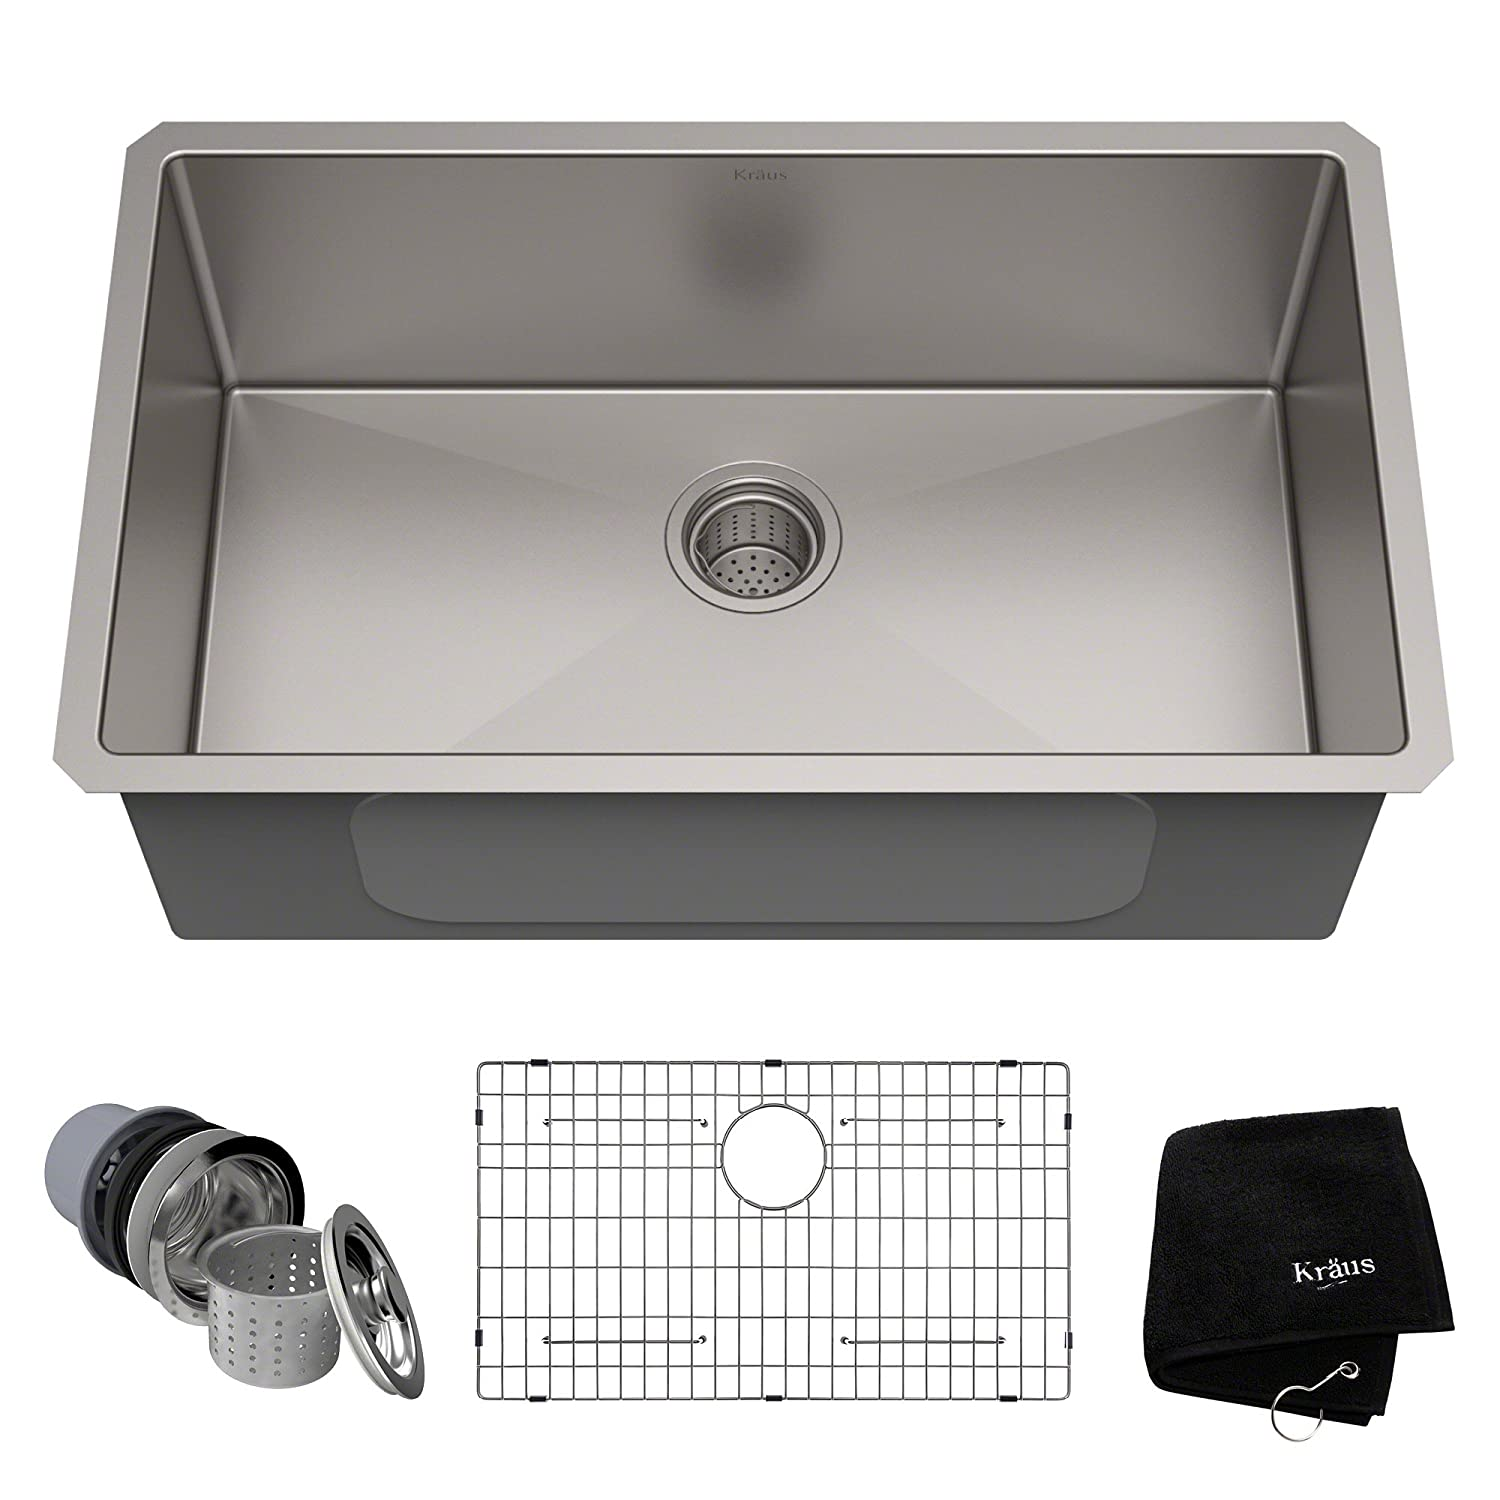 Kraus KHU100-30 Kitchen Sink, 30 Inch, Stainless Steel